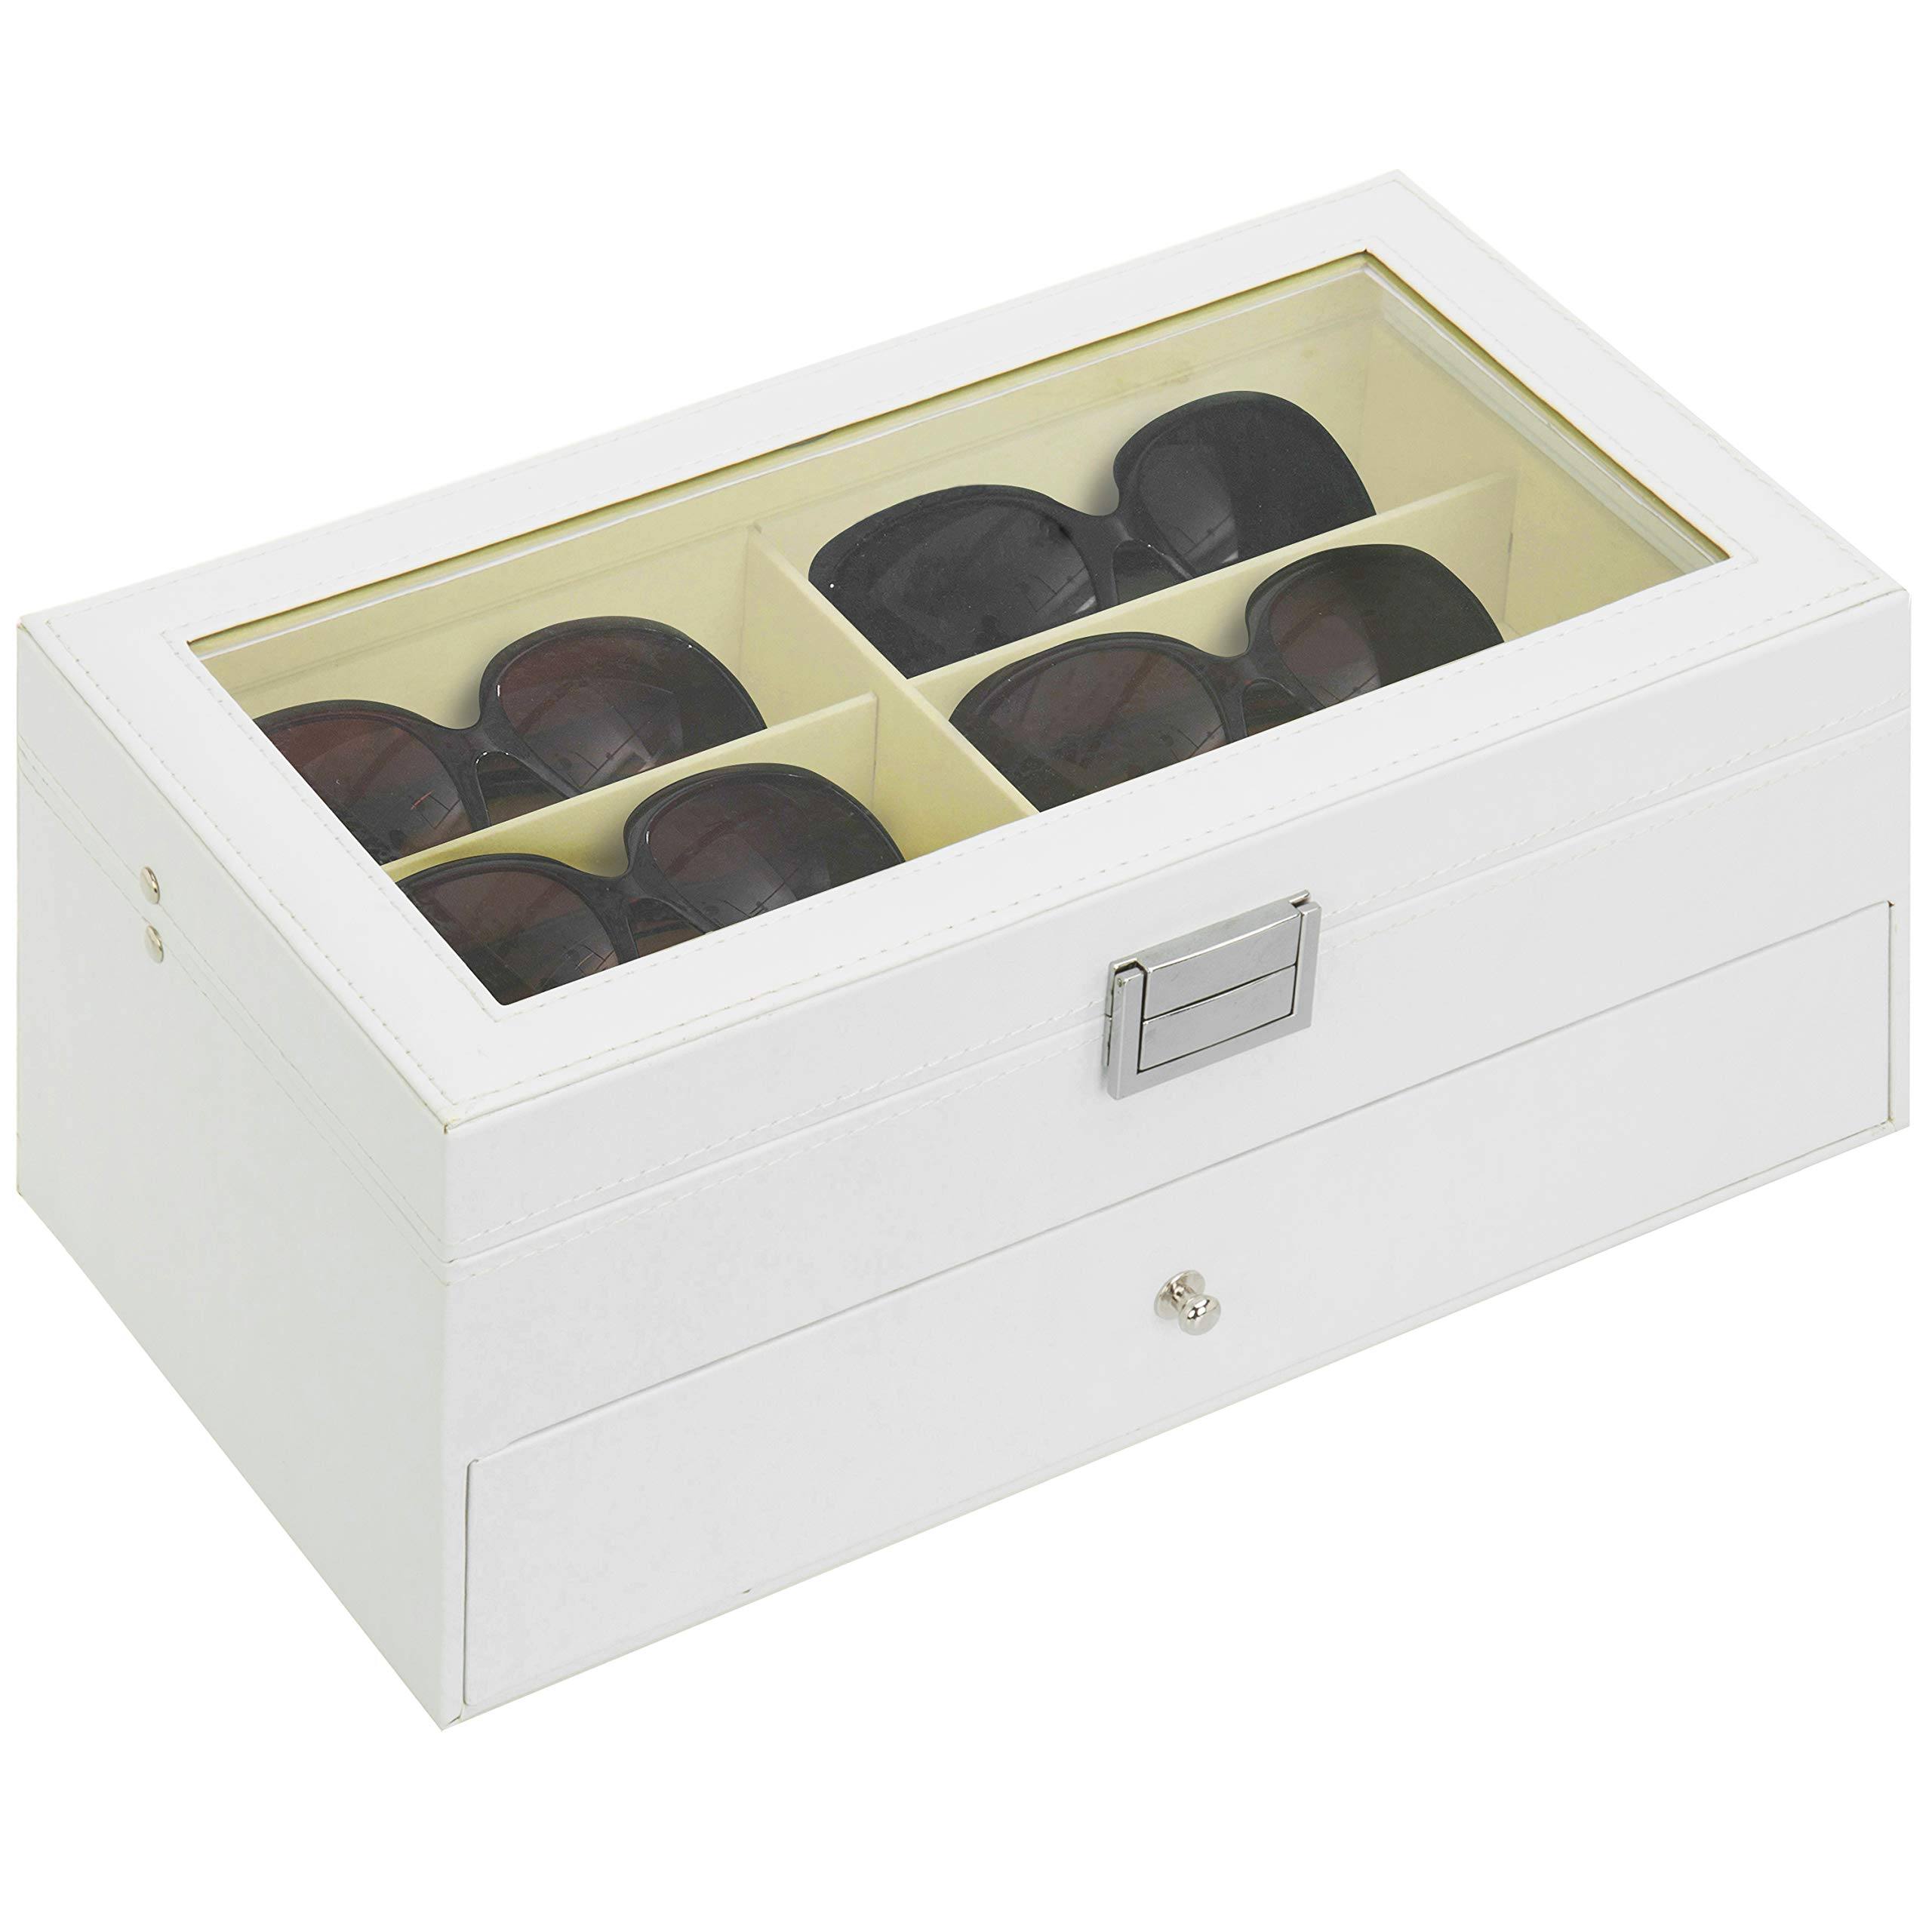 MyGift Deluxe White 12-Compartment Sunglasses Display Case with Glass Lid and Leatherette Trim by MyGift